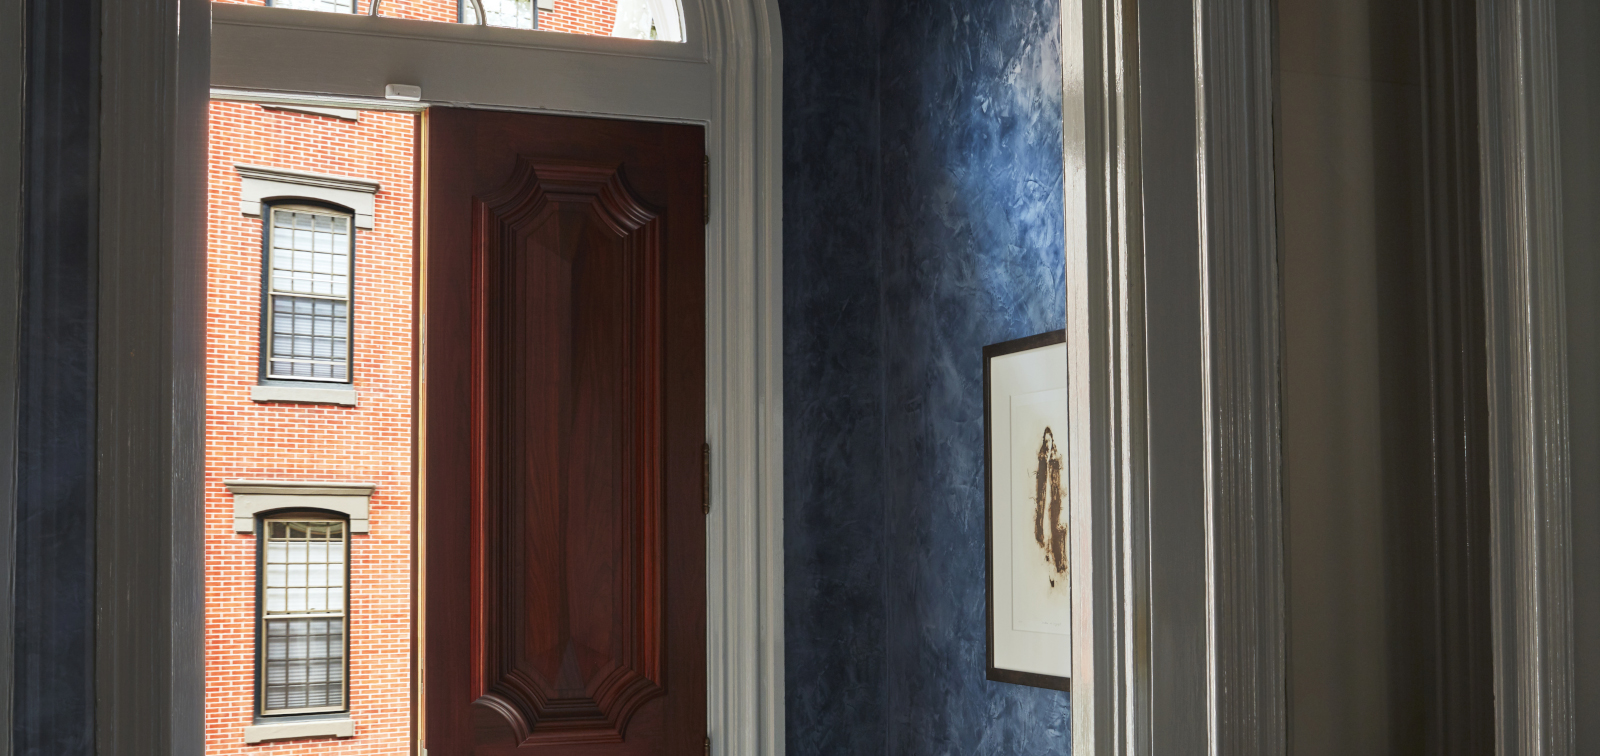 photo of foyer showing white woodwork around stained door to left and blue venetian plaster to the right